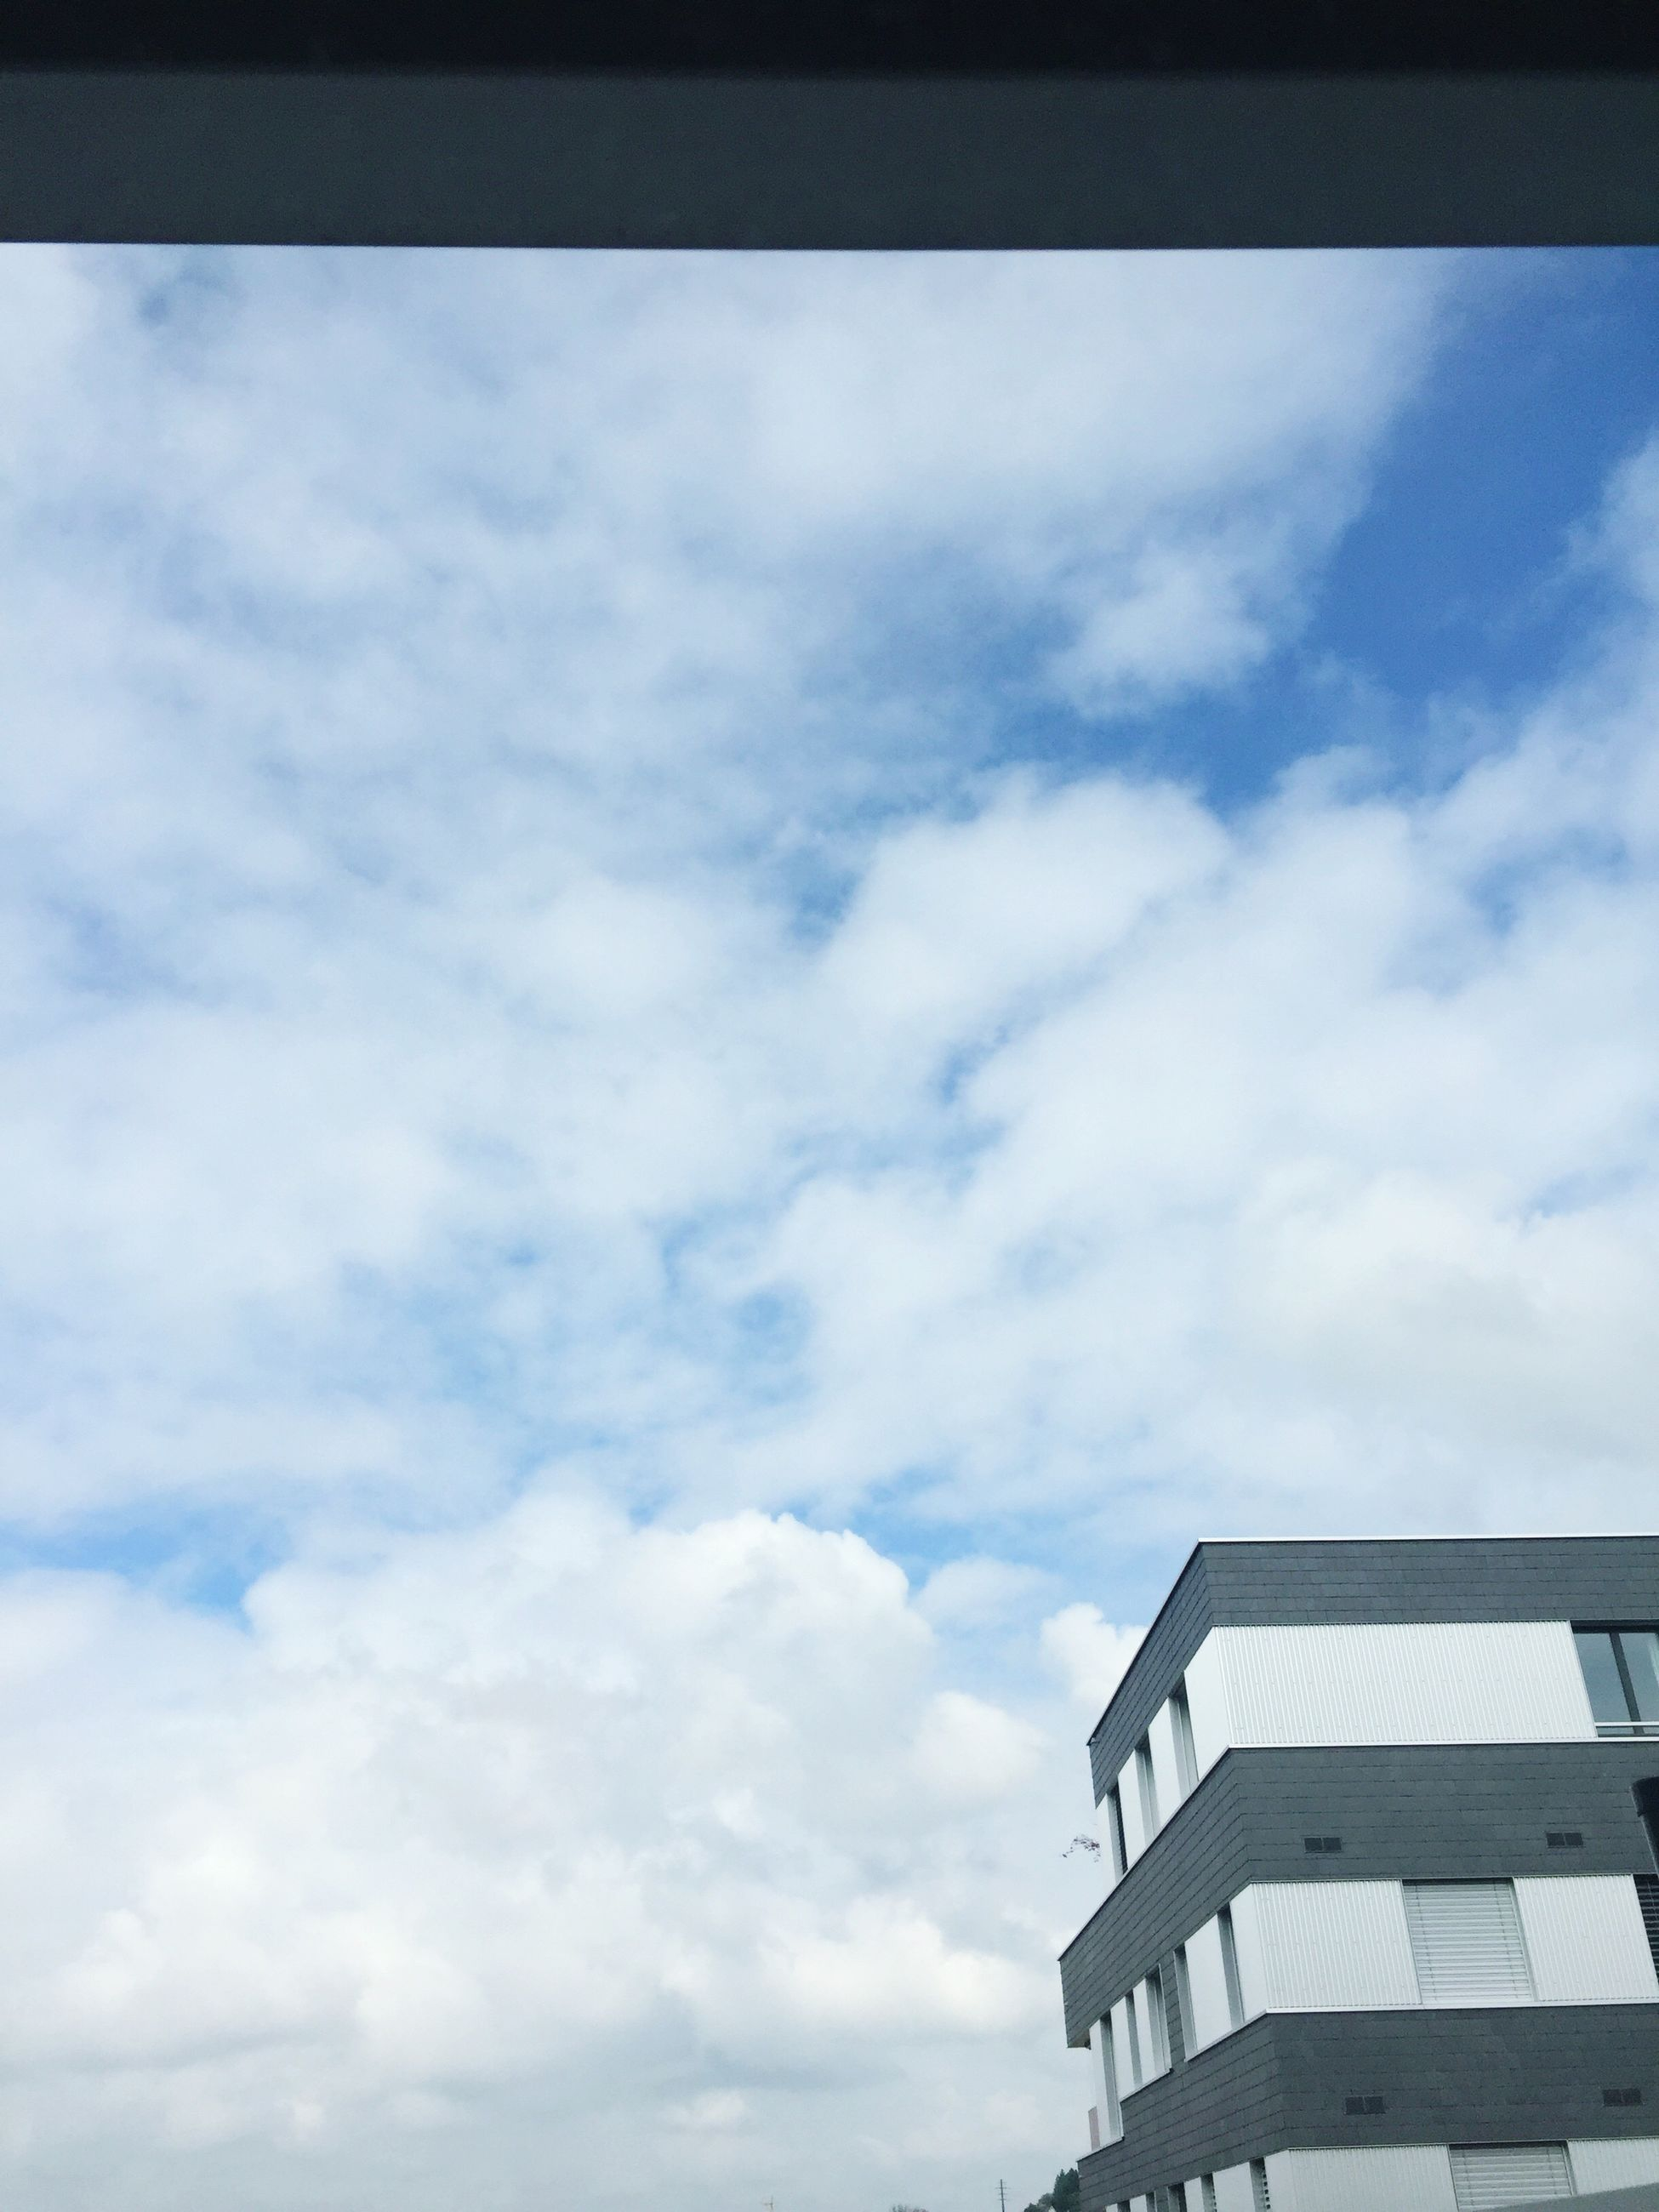 sky, cloud - sky, low angle view, built structure, architecture, no people, day, outdoors, building exterior, nature